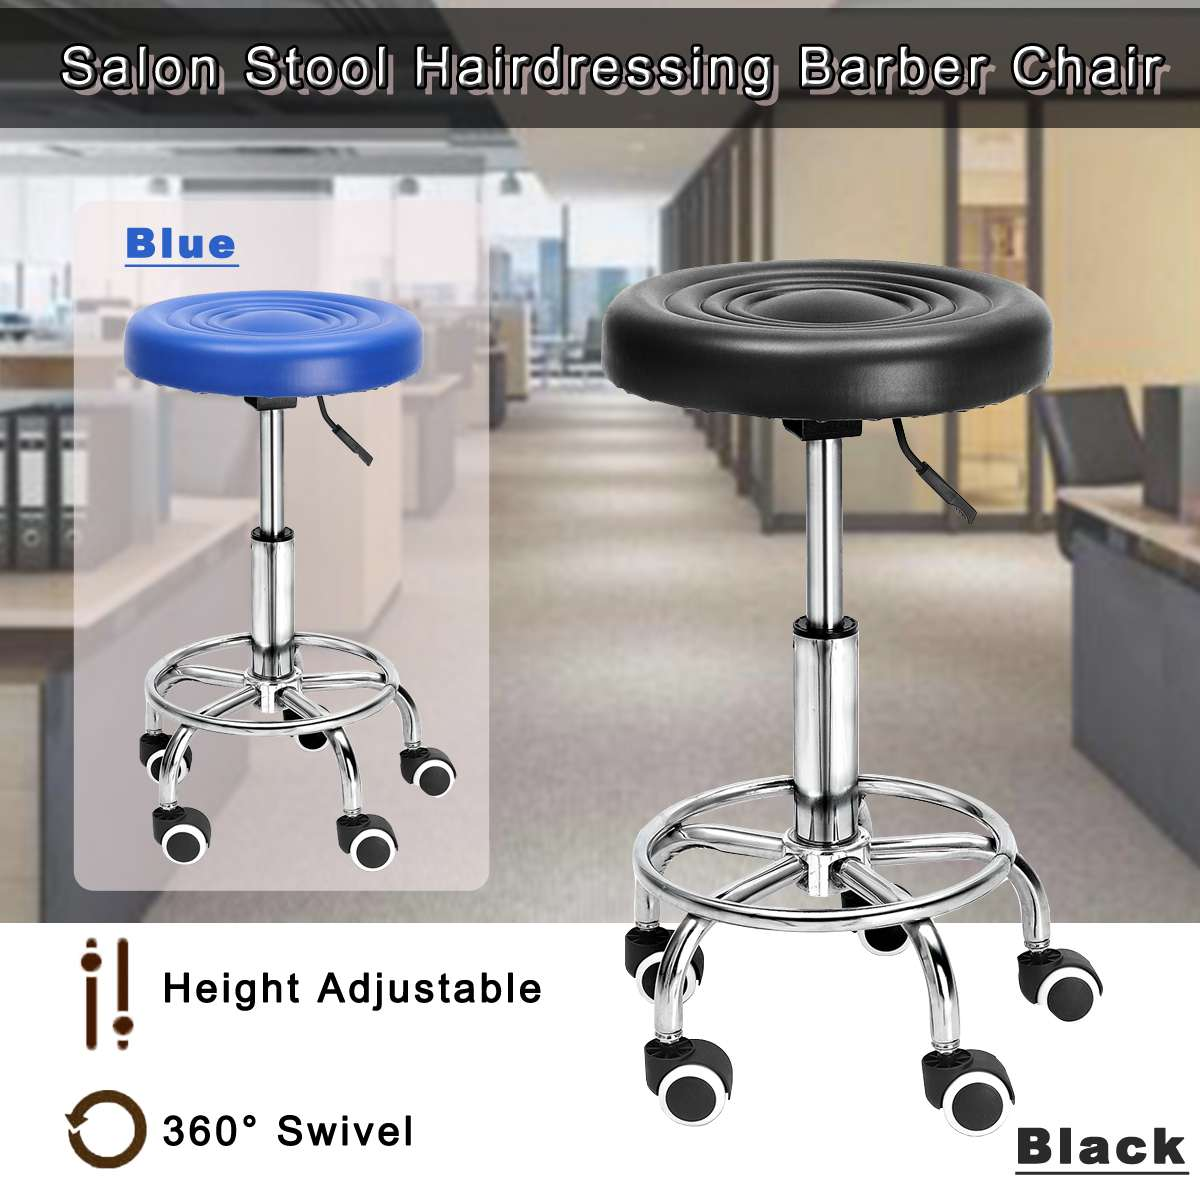 Adjustable Height Gas Lift Retro Bar Stools Modern Hollow Bar Barber Salon Chair Home High Stool Continental Rotating